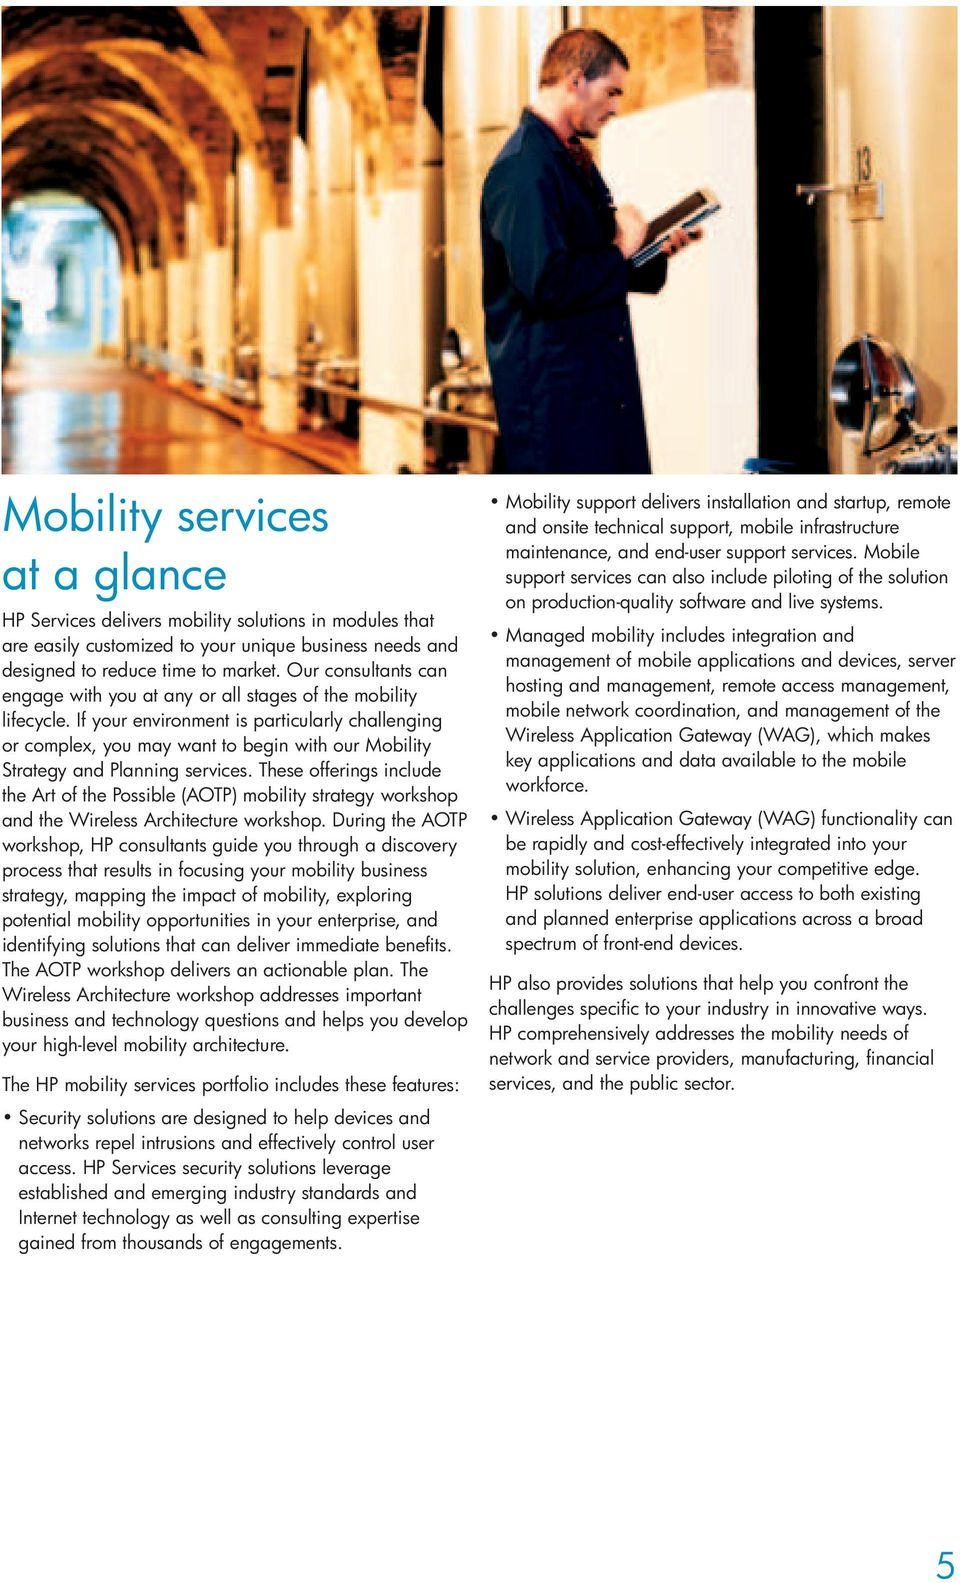 If your environment is particularly challenging or complex, you may want to begin with our Mobility Strategy and Planning services.